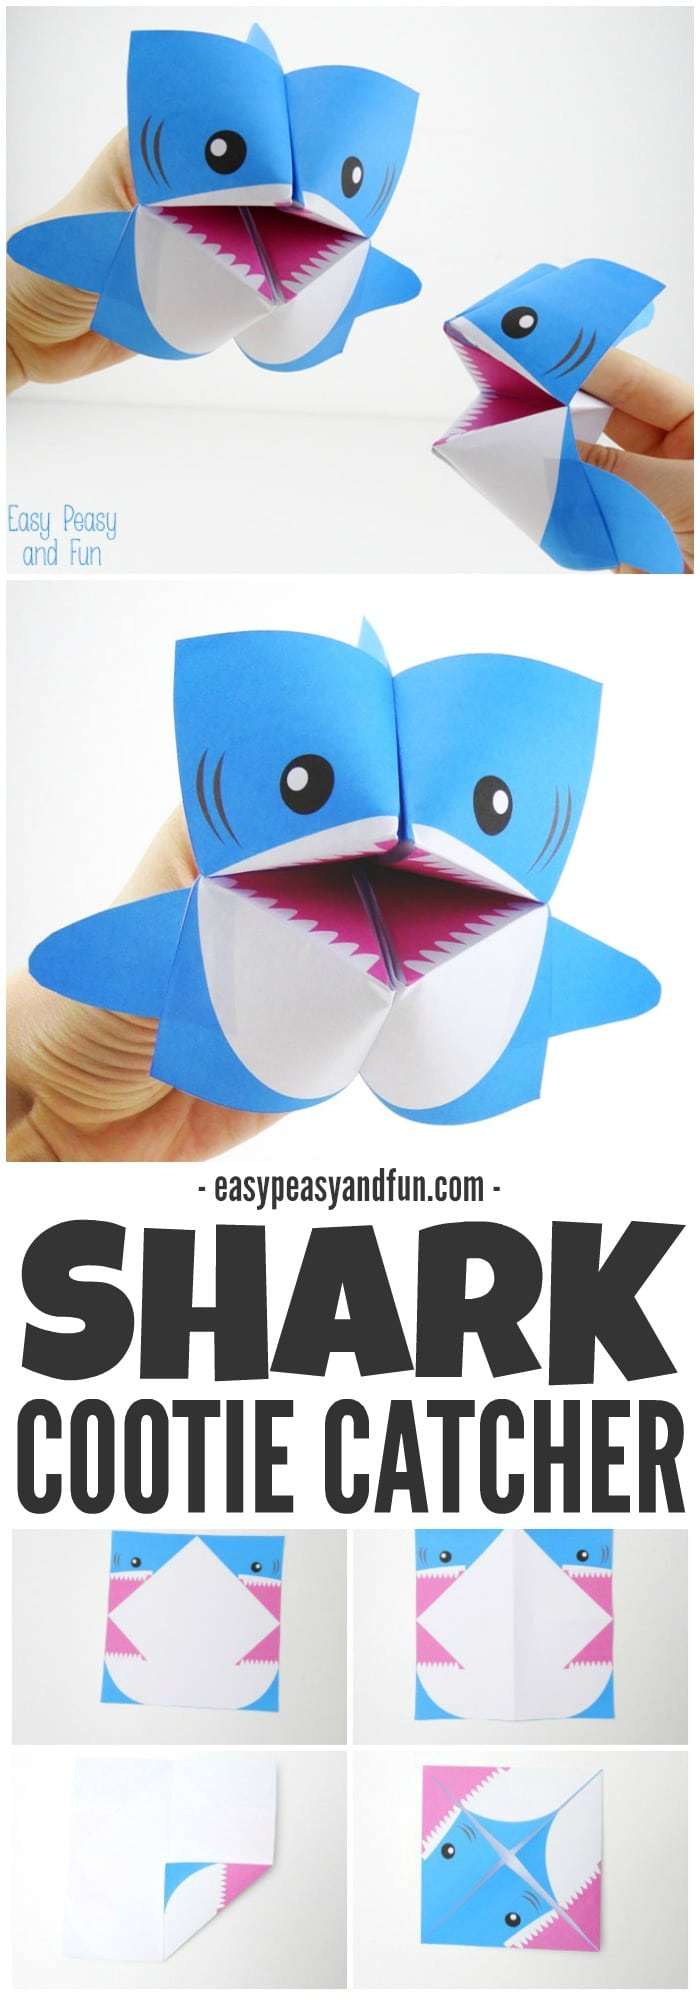 photo regarding Cootie Catcher Printable known as Shark Cootie Catcher - Origami for Children - Straightforward Peasy and Enjoyment